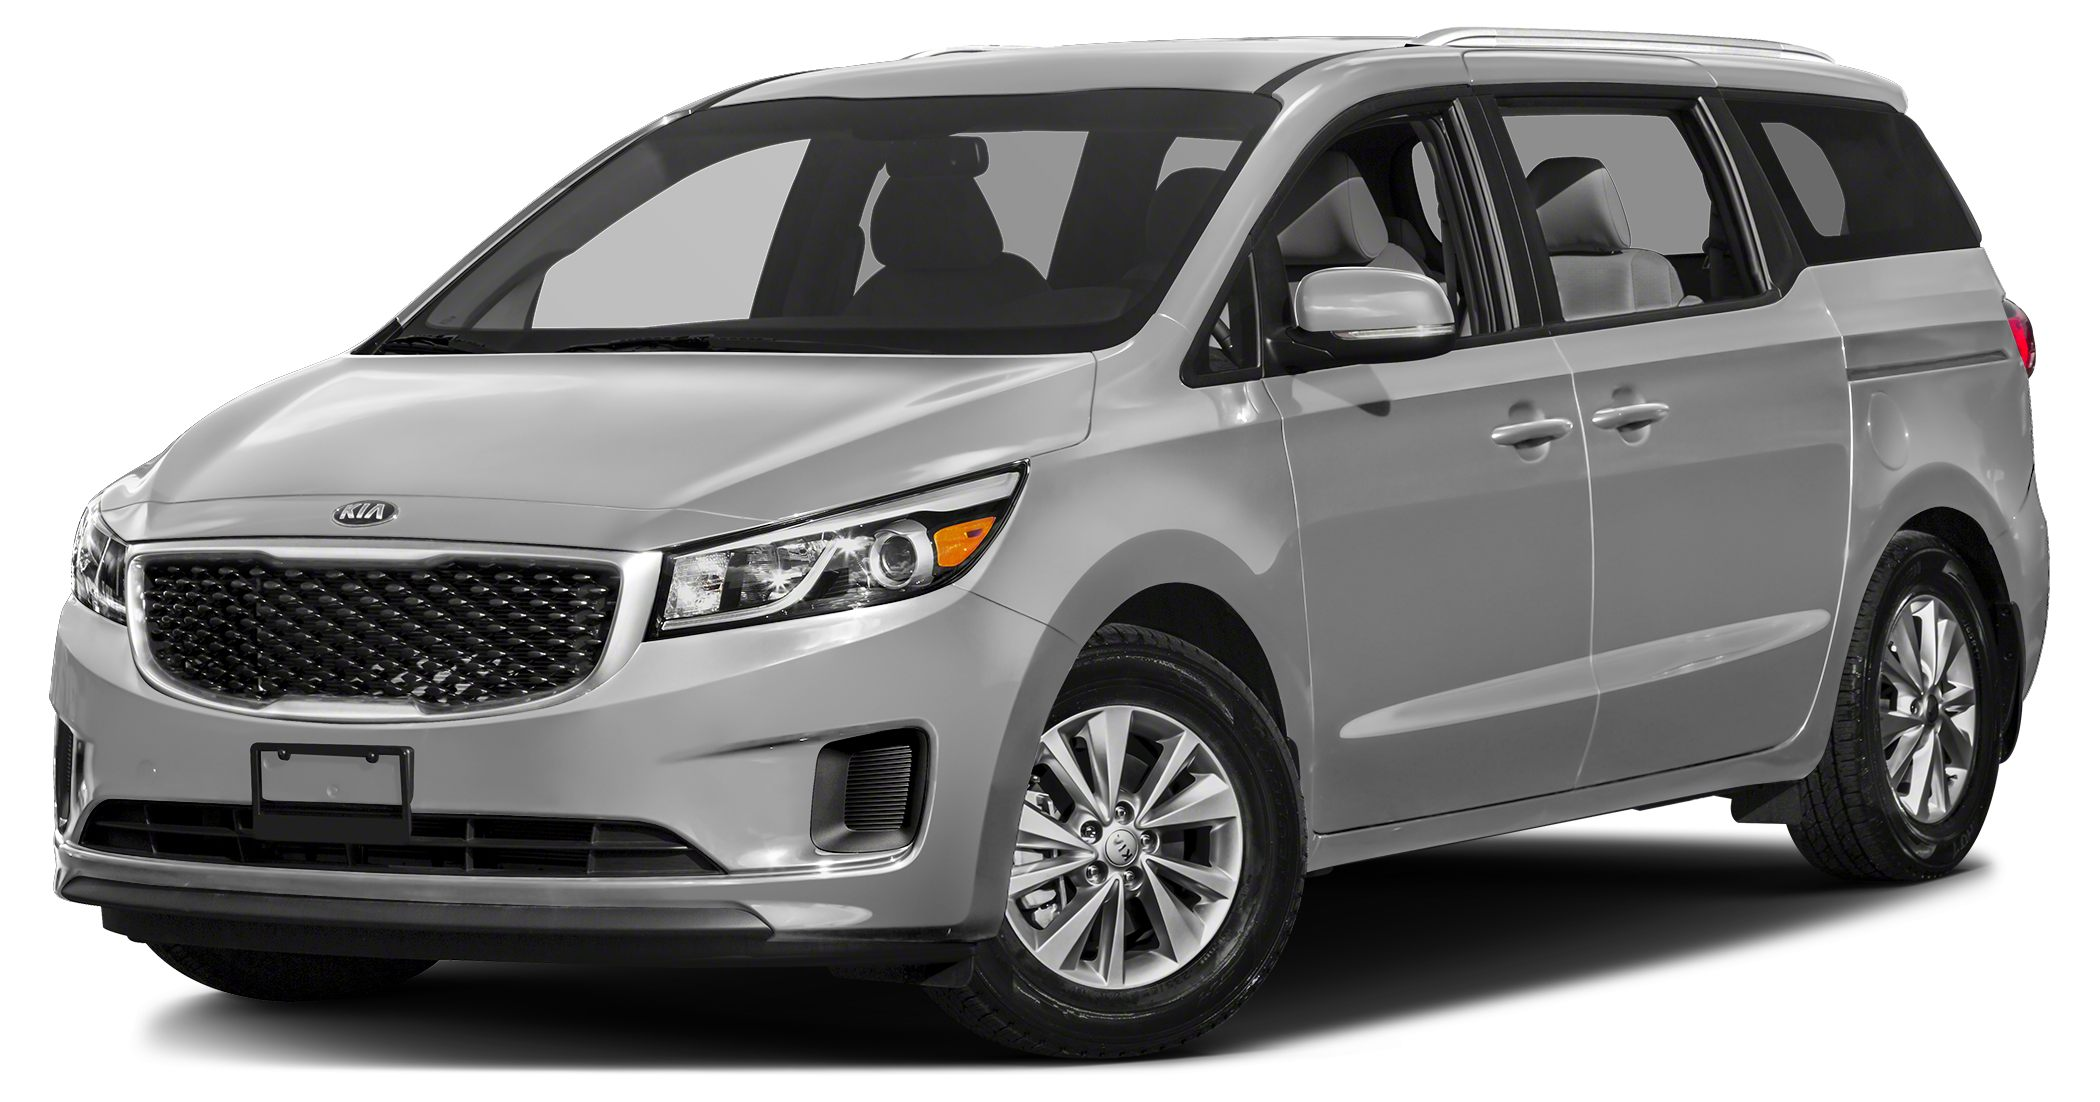 2018 Kia Sedona EX At Sunset Kia of Sarasota we pride ourselves on exceptional customer service t